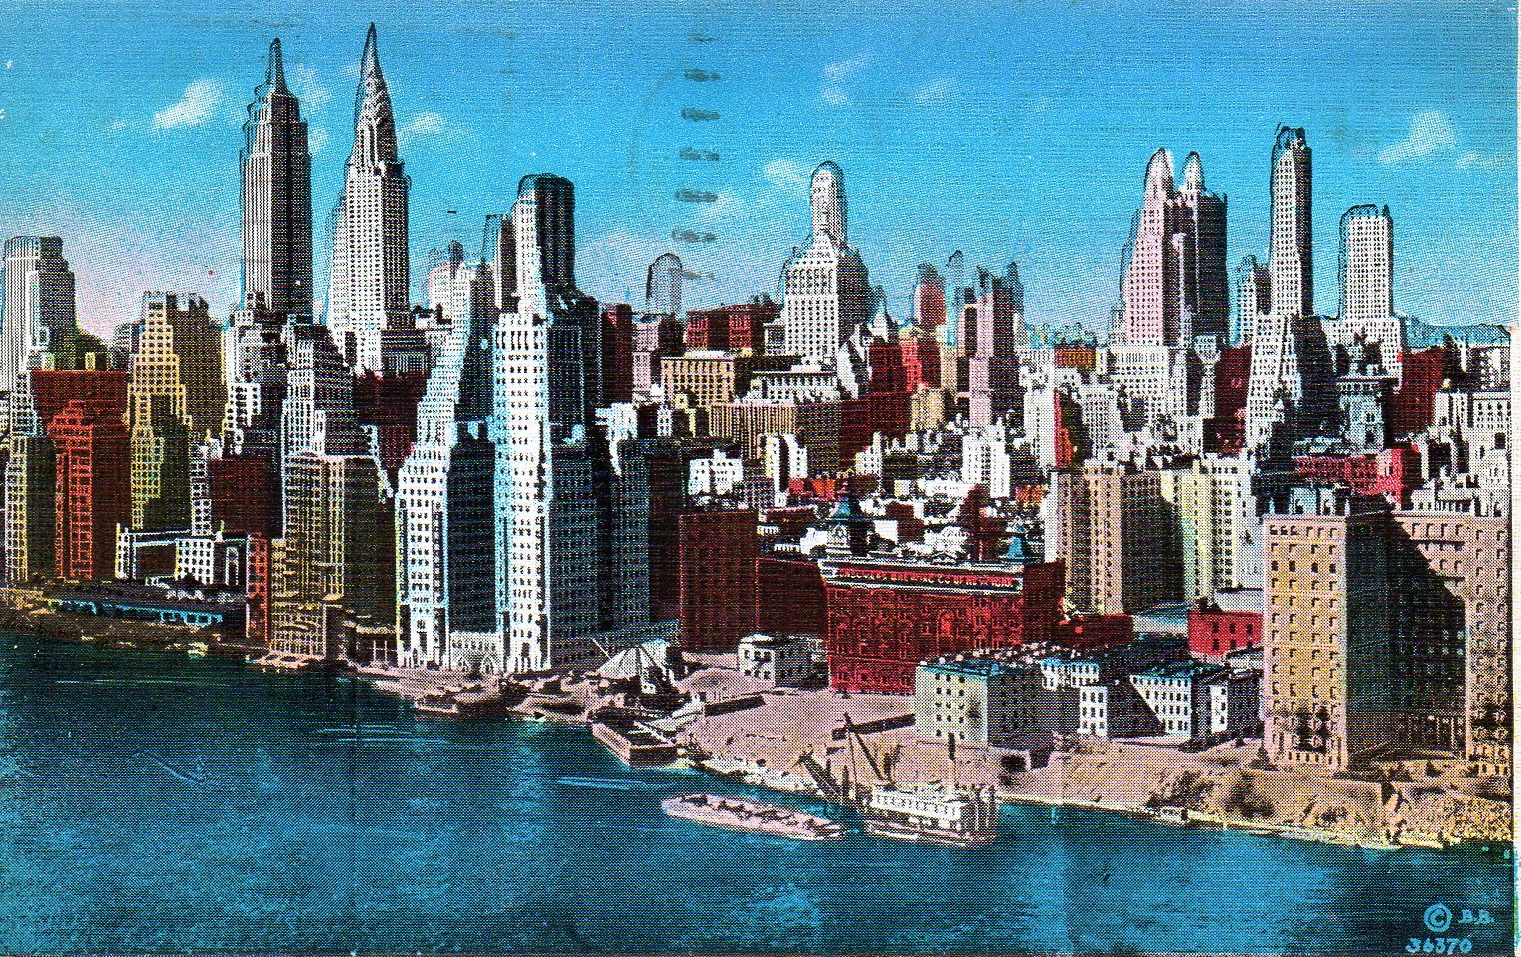 Tags:Chrysler Building 1935,